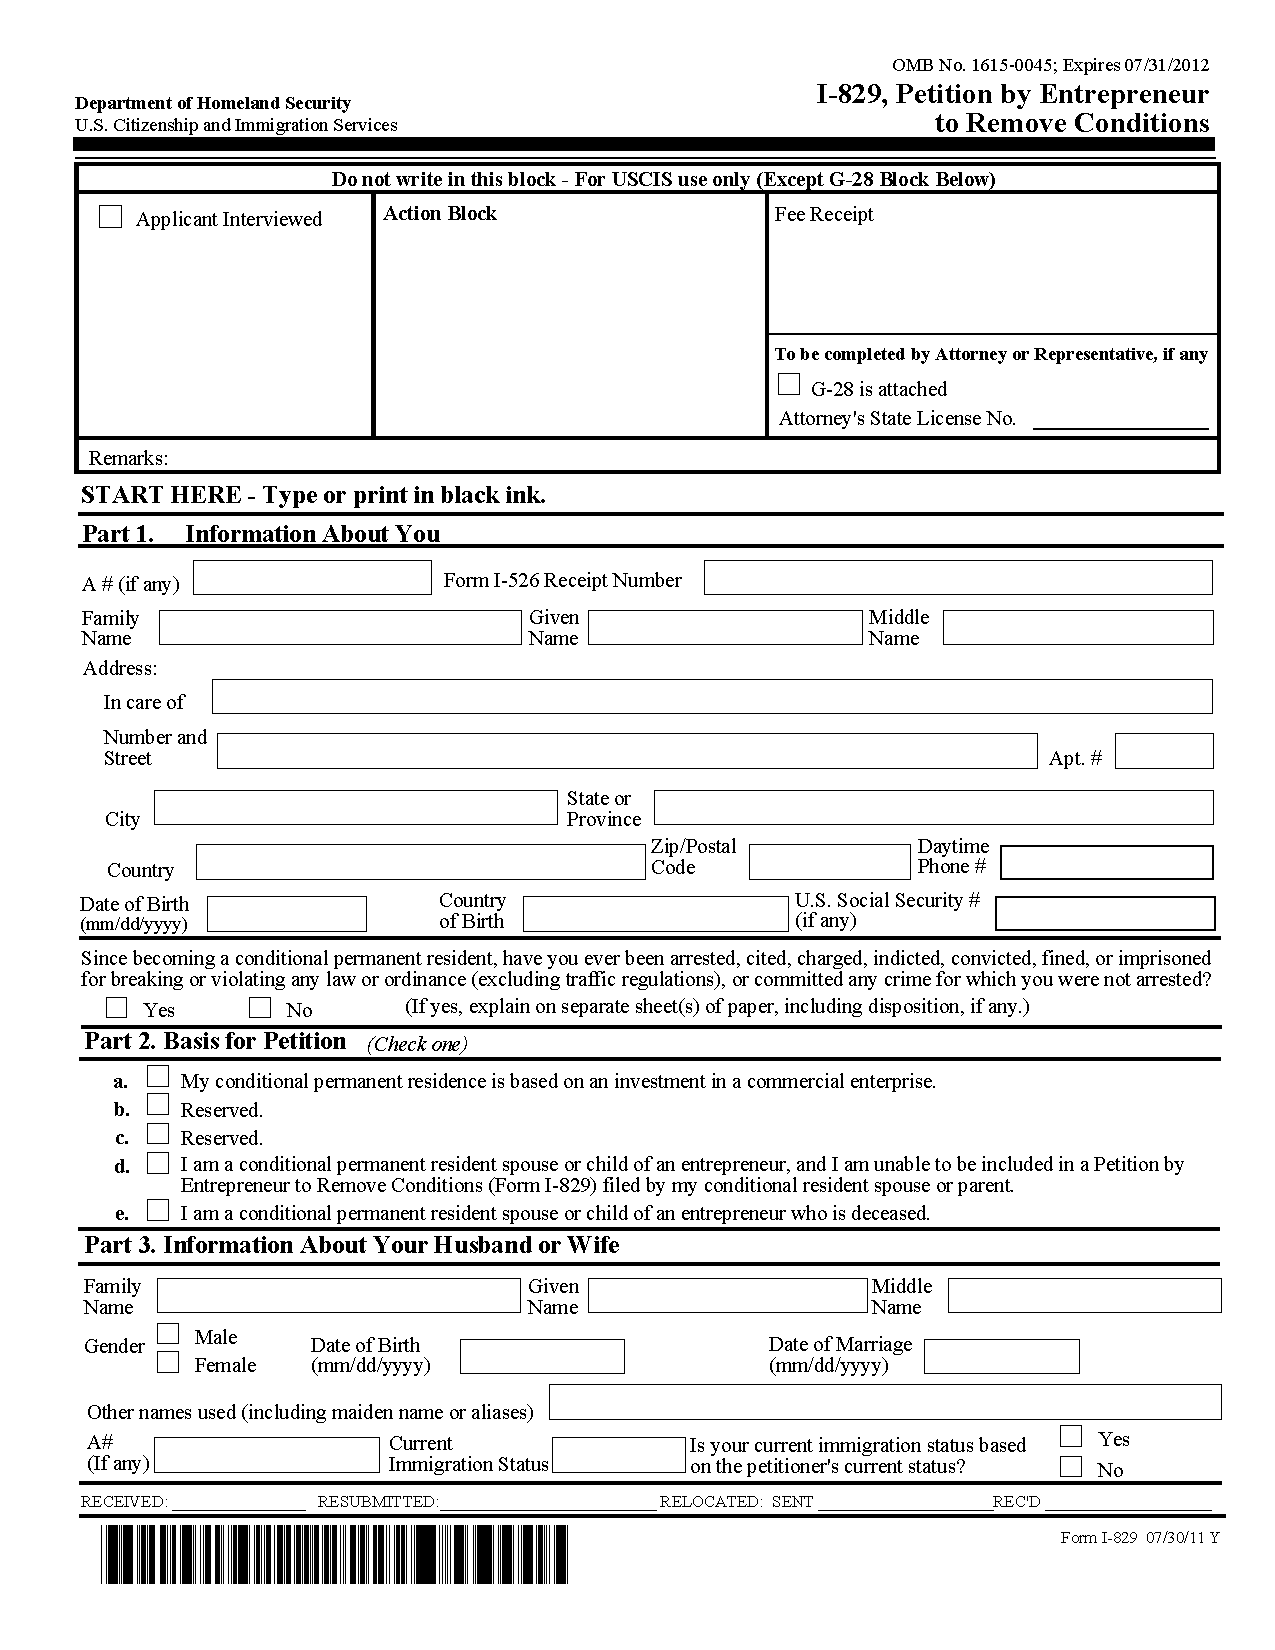 Immigration+Form+N-336 USCIS Immigration Forms. Related Images